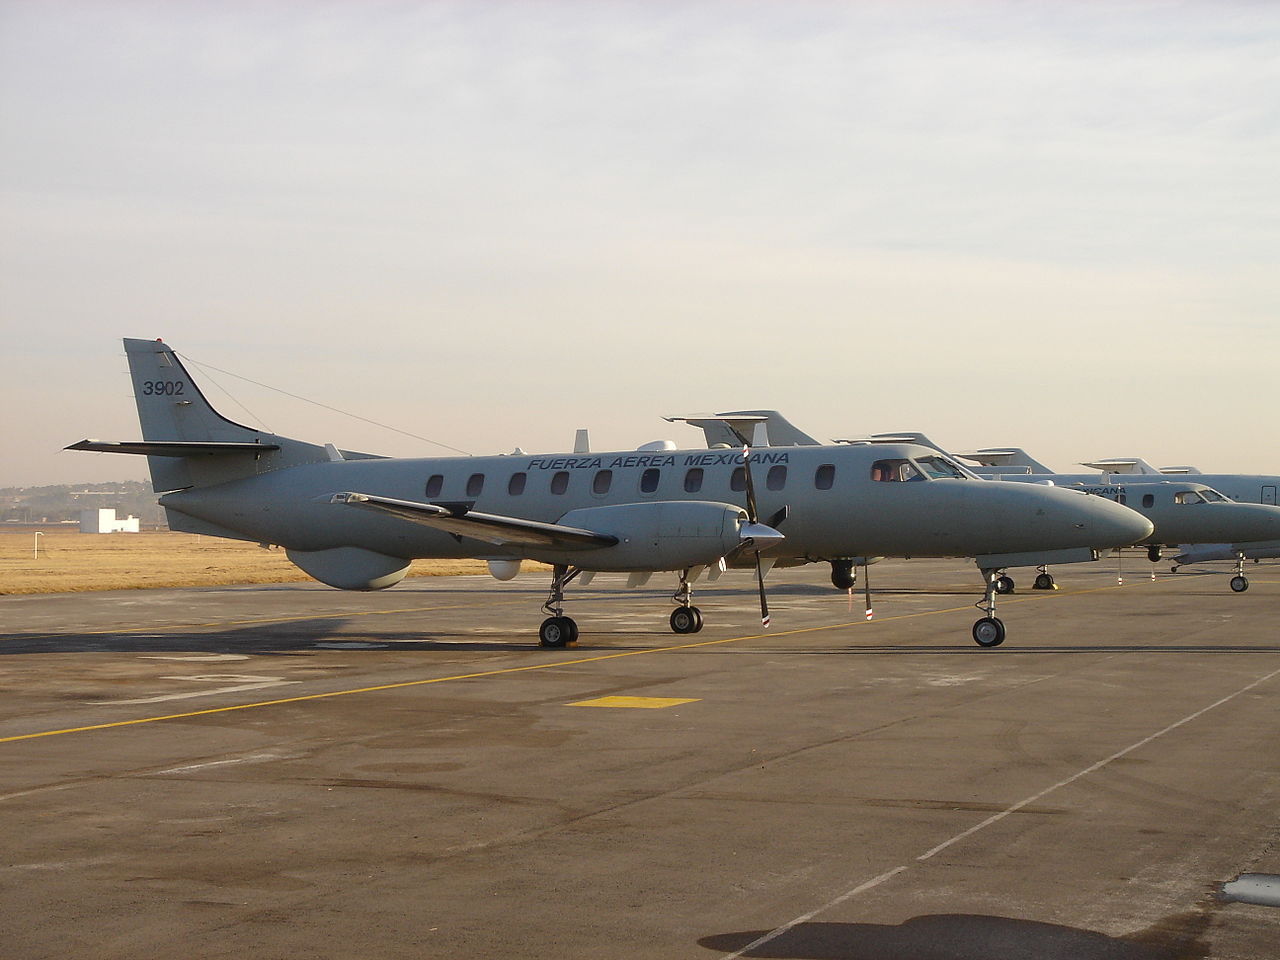 Fairchild-Swearingen Metroliner (C-26A) mexicain